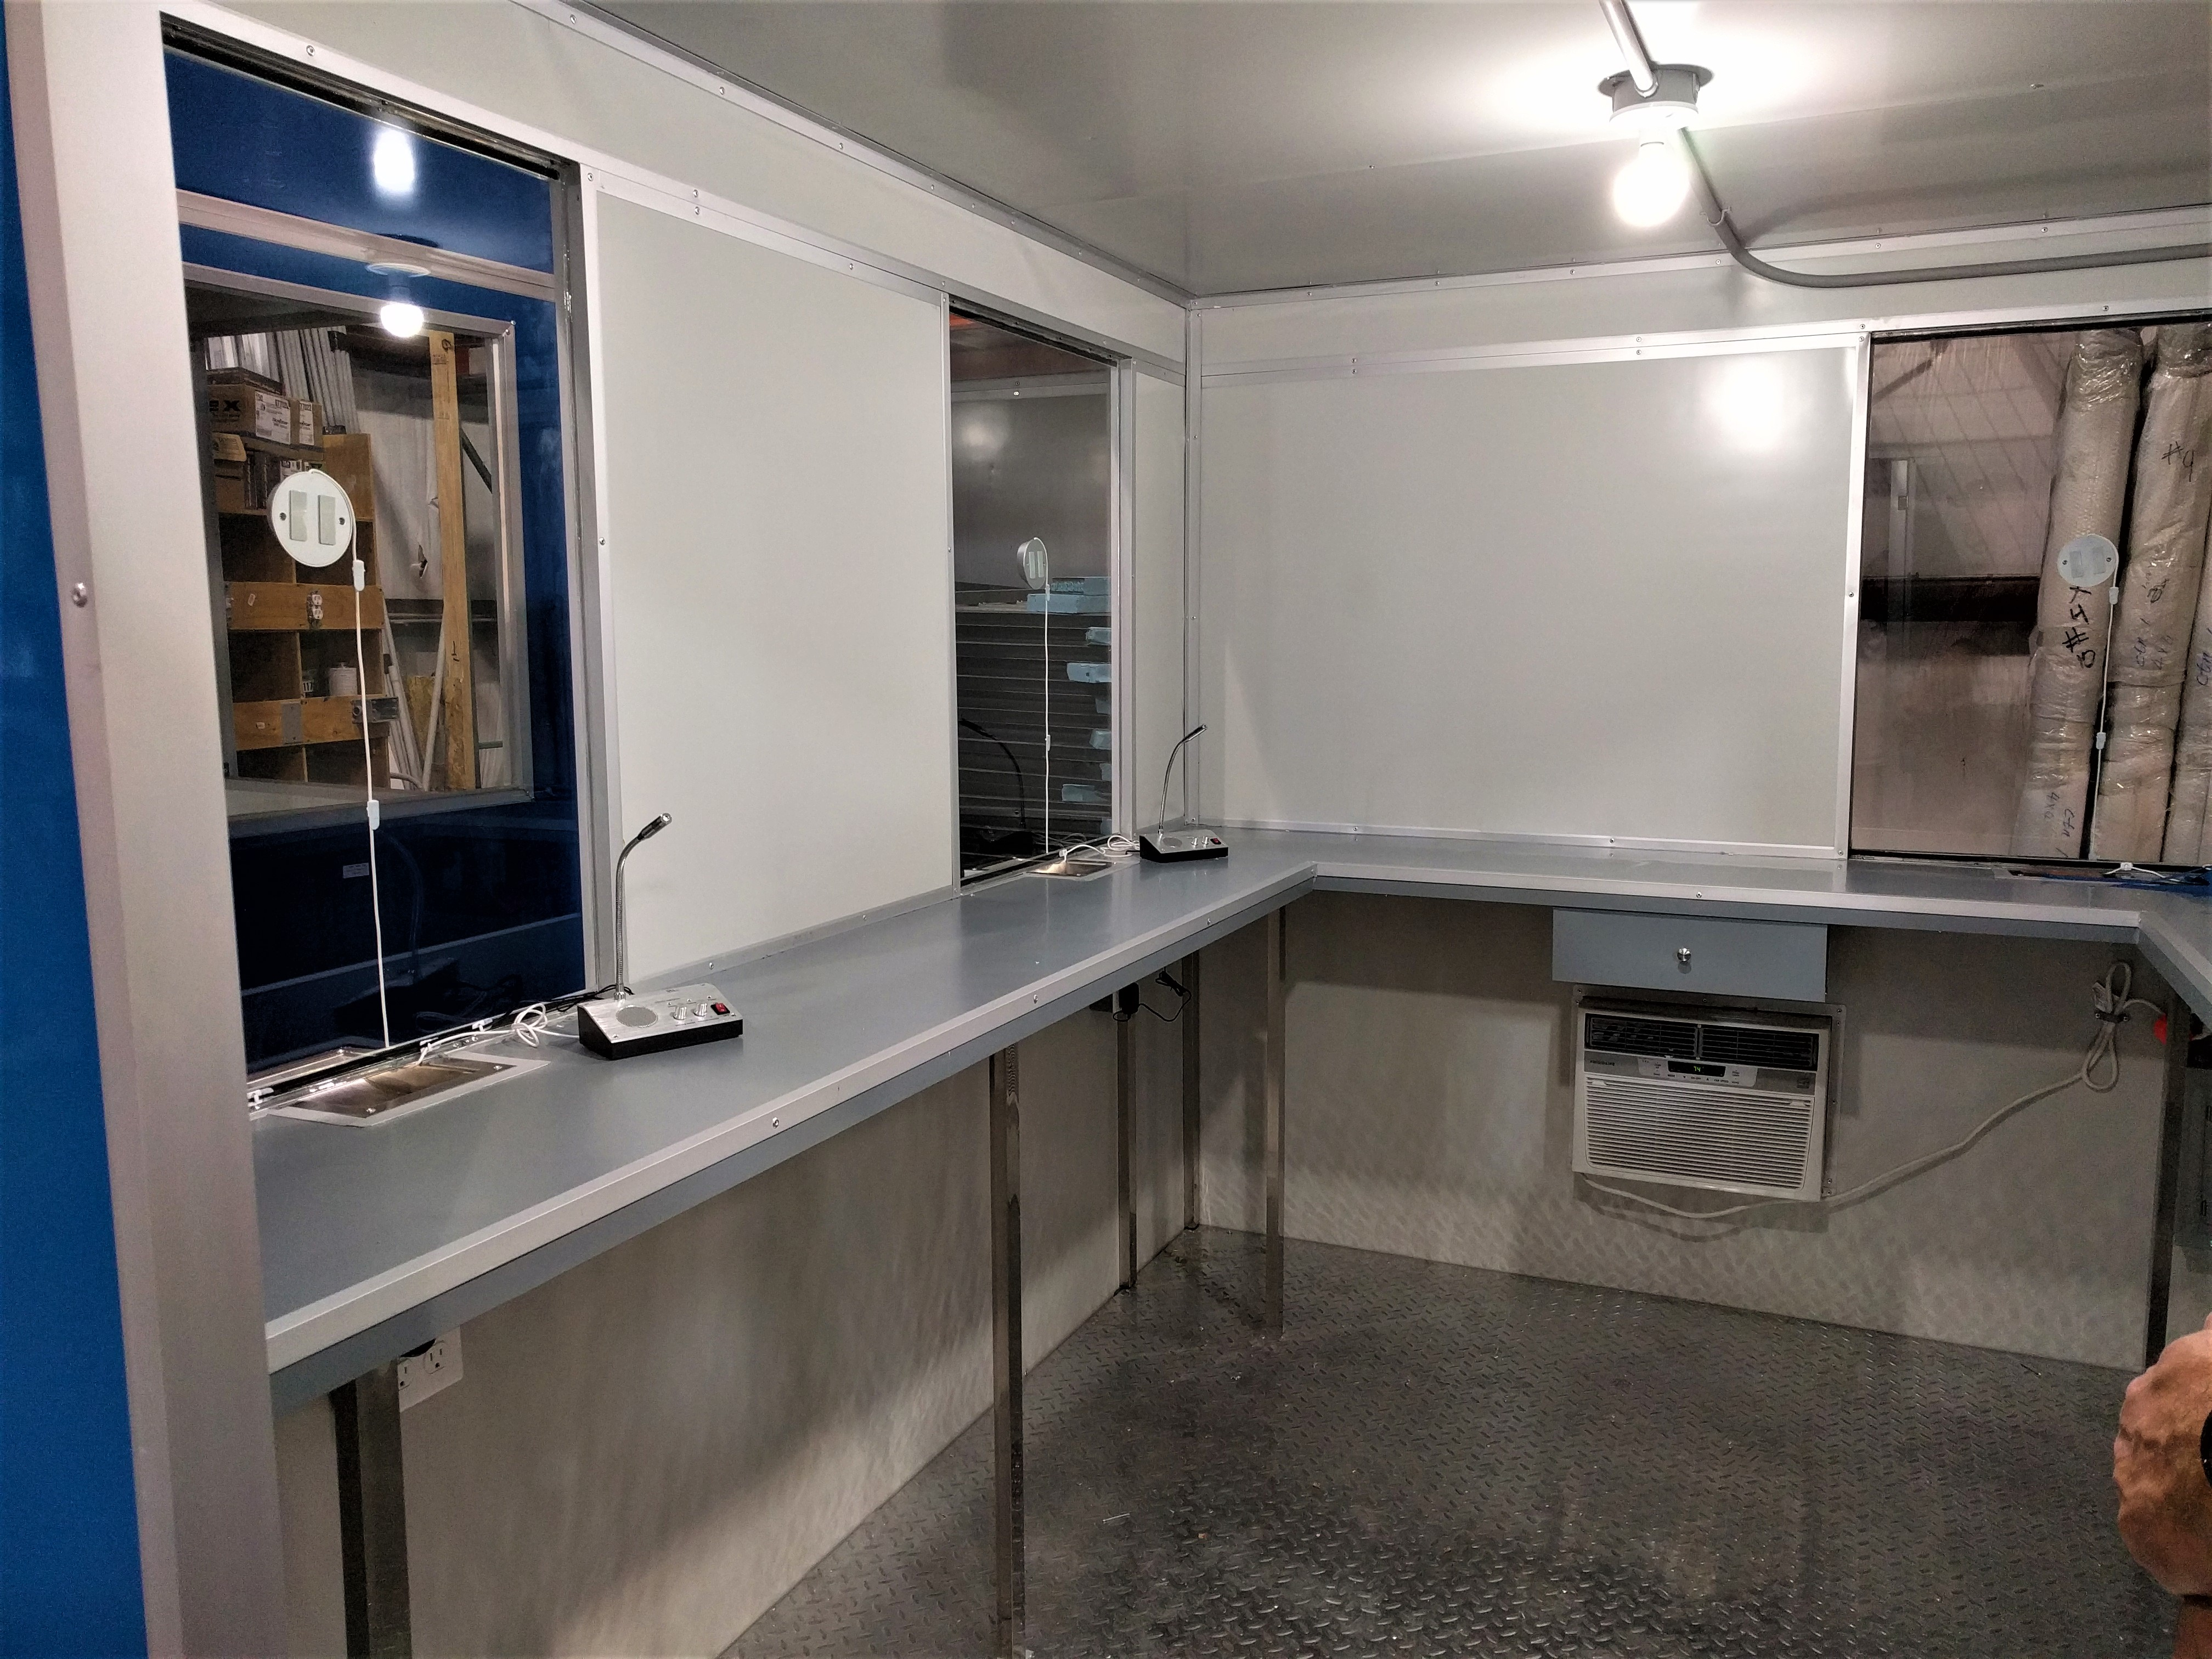 8x10 Ticket Booth in Miramar, FL with Ticket Transaction Windows, Speakers, Extra Desk, Cash Drawer, and Cash Slot